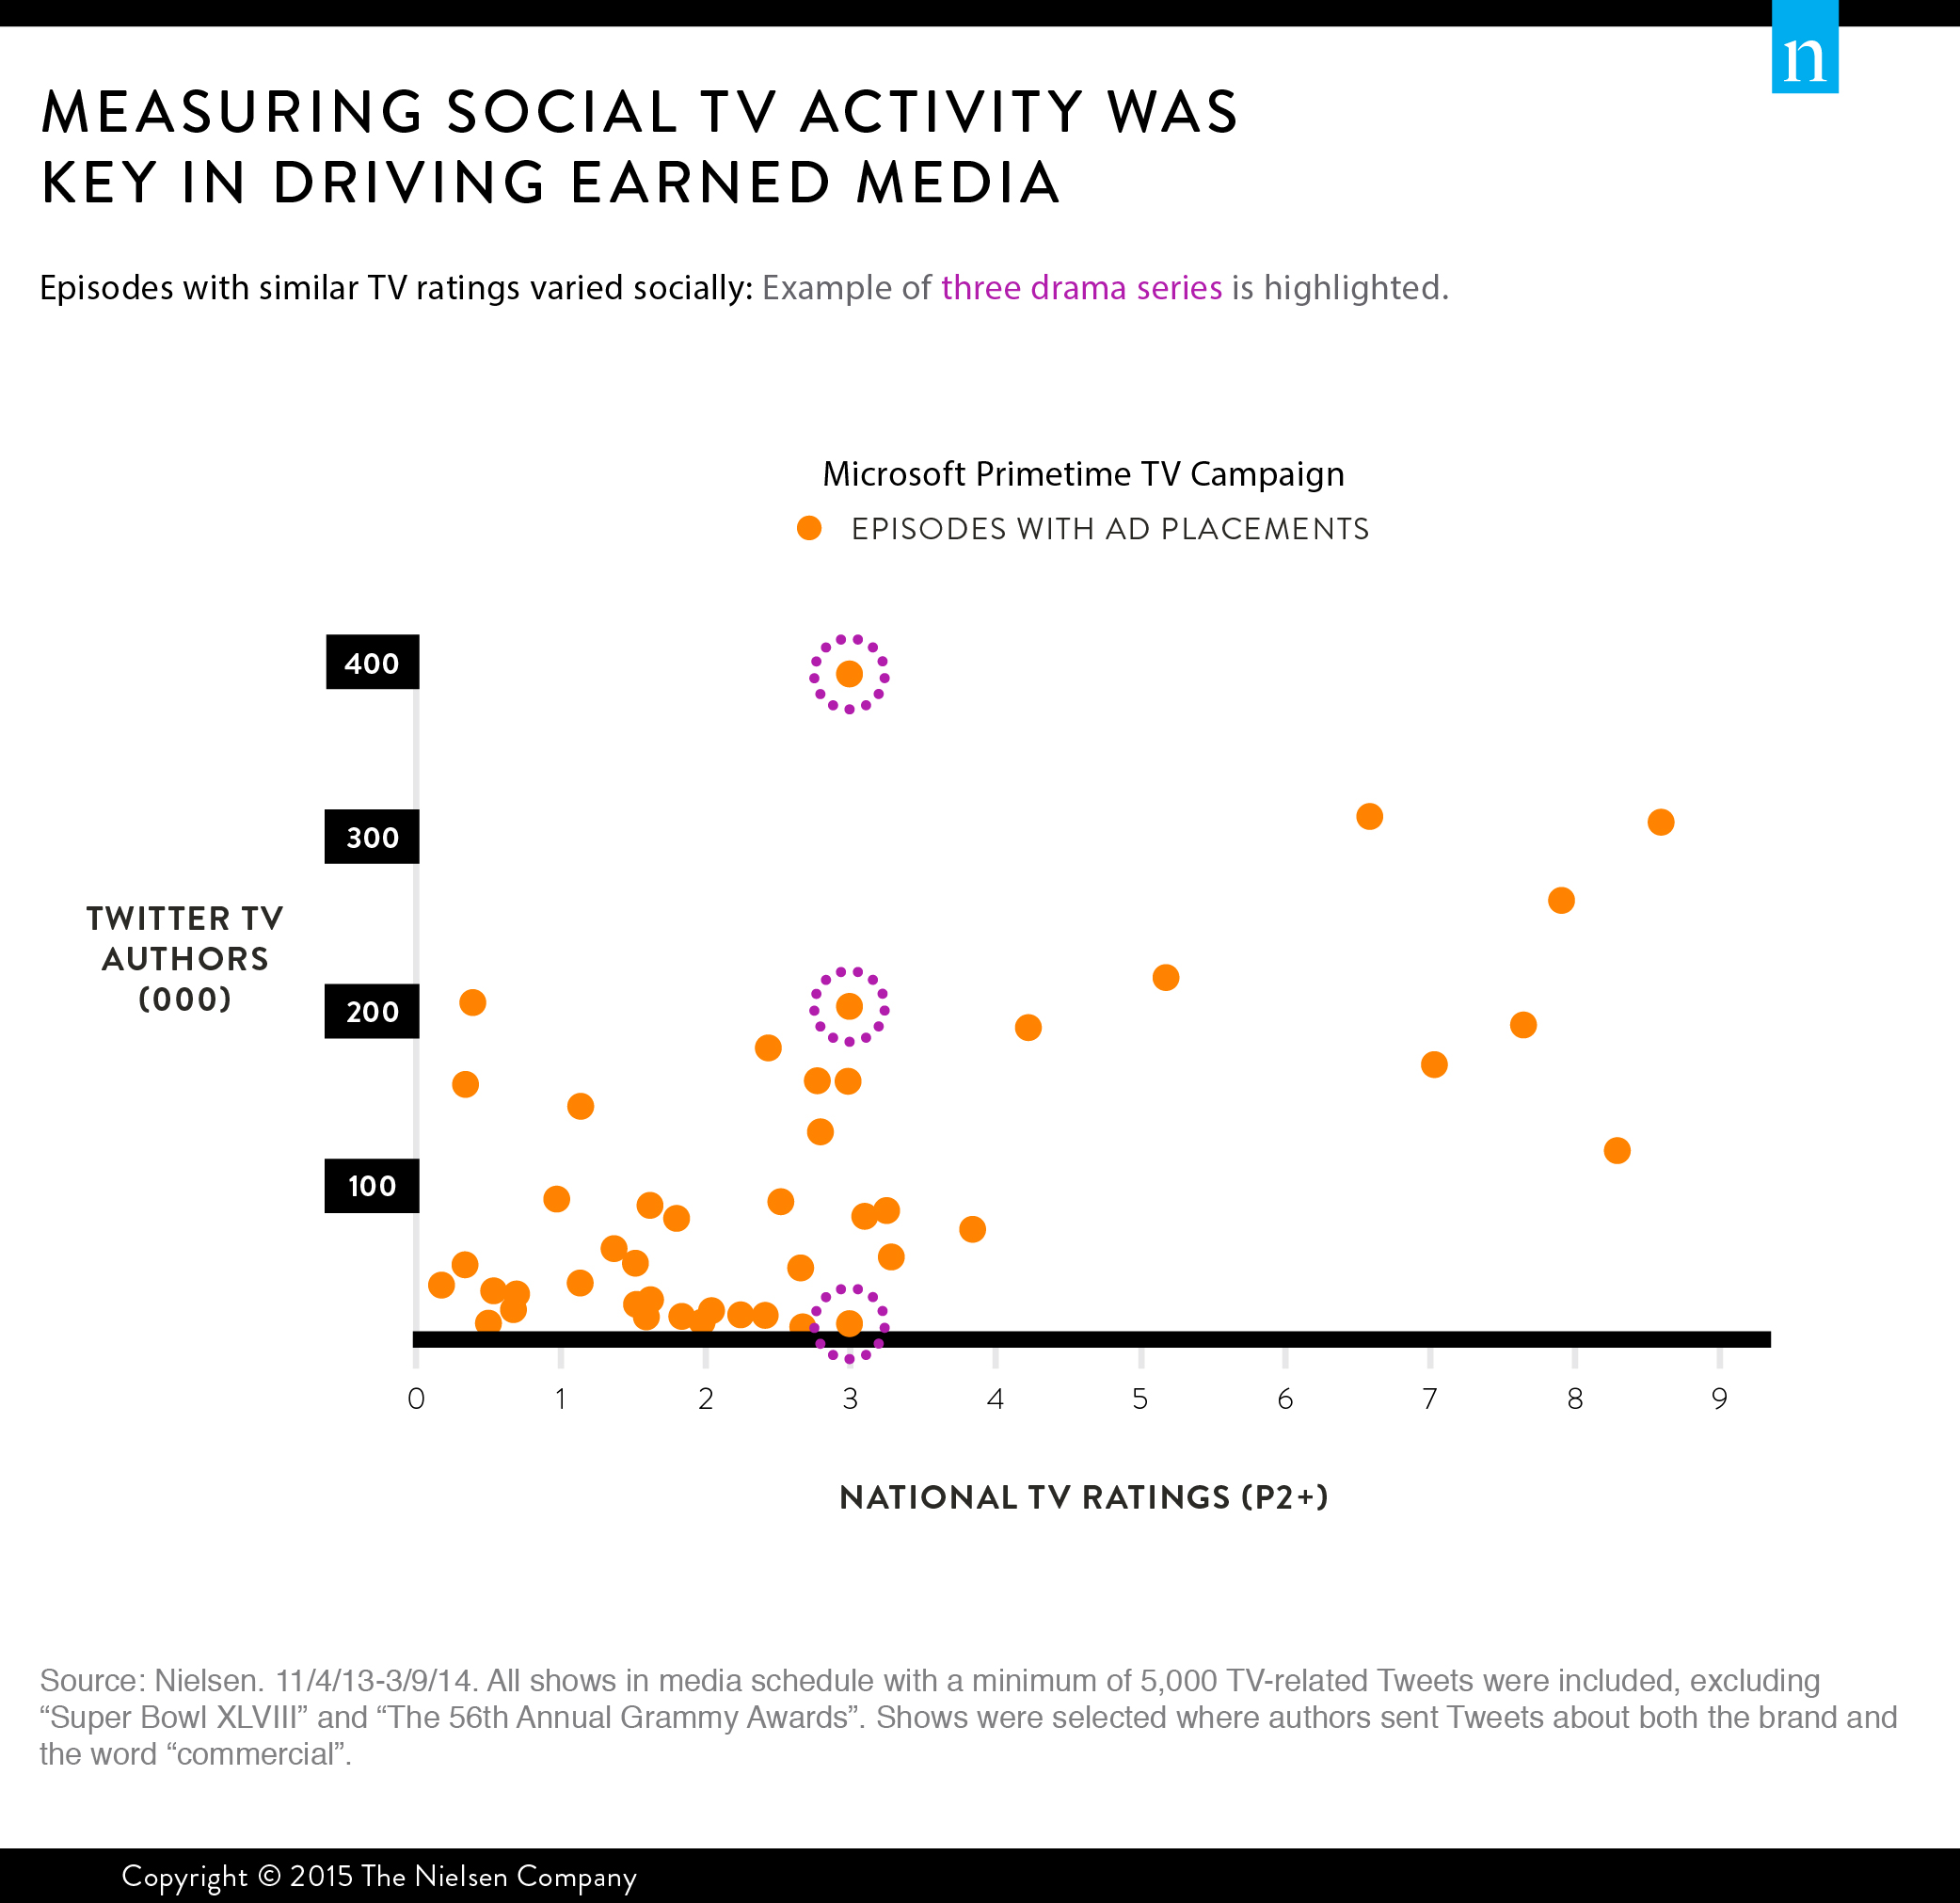 Social TV Activity Key in Driving Earned Media